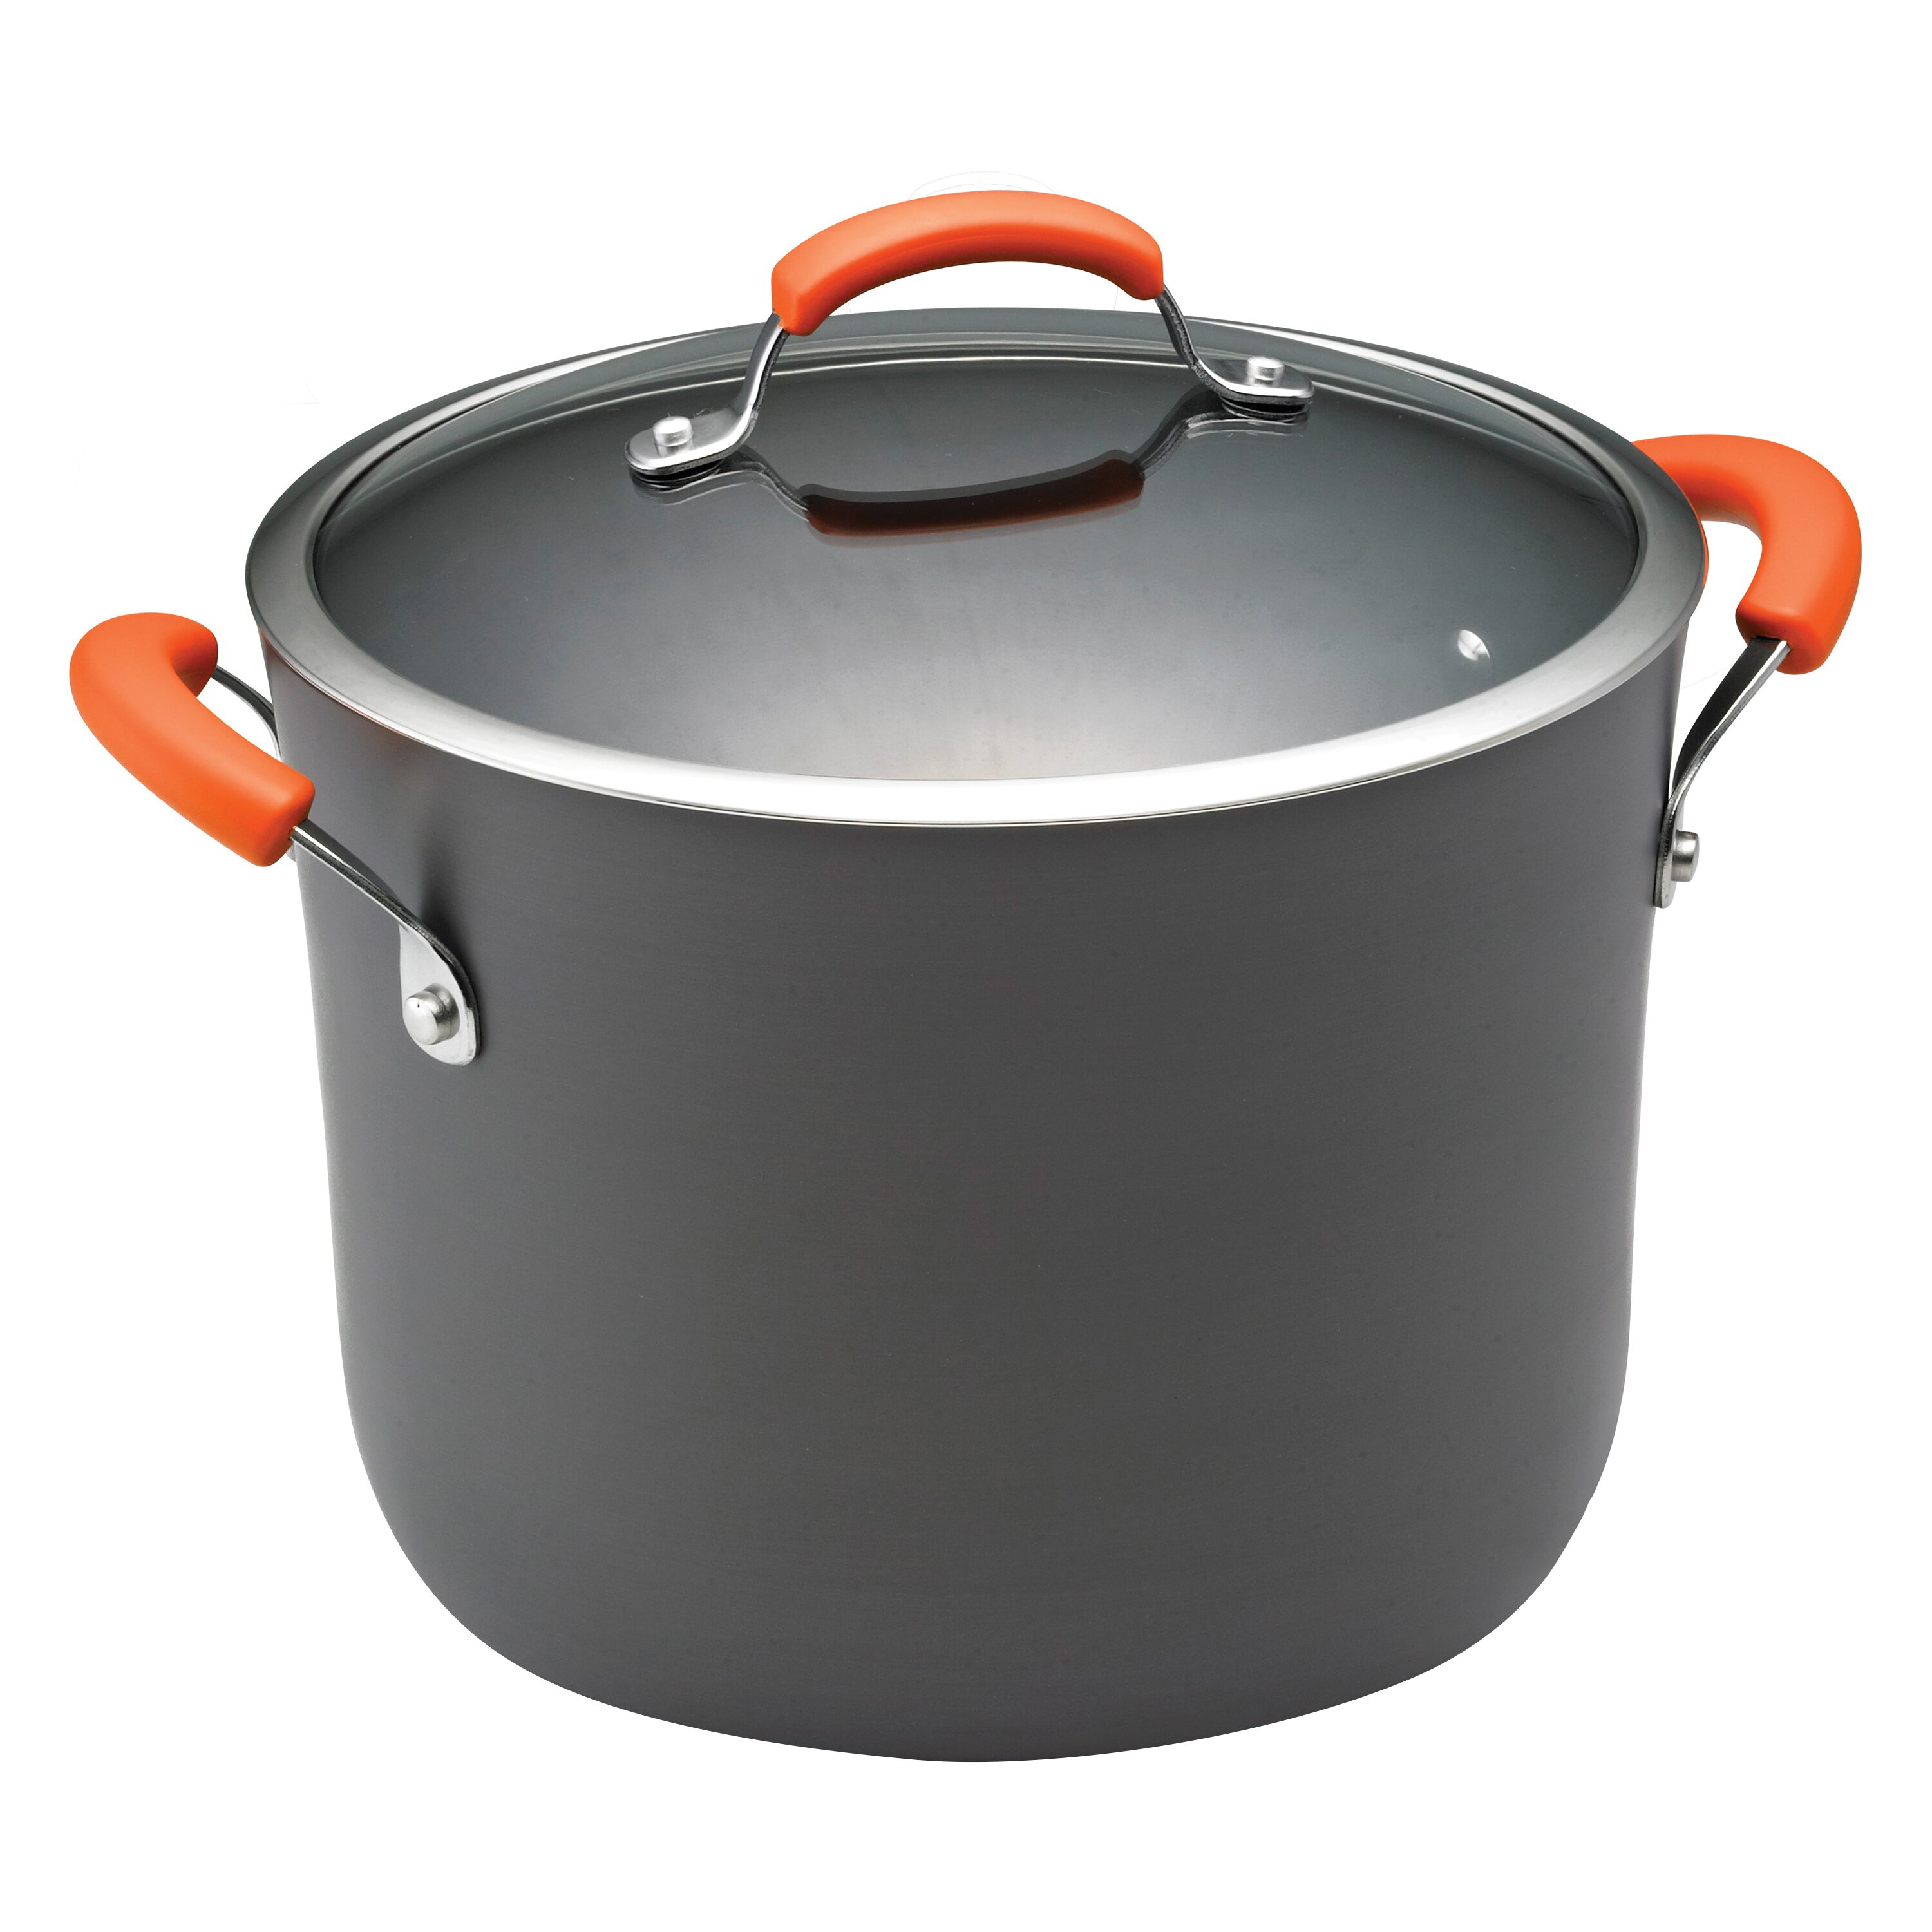 rachael ray hard anodized ii 10 qt stock pot with lid reviews wayfair. Black Bedroom Furniture Sets. Home Design Ideas